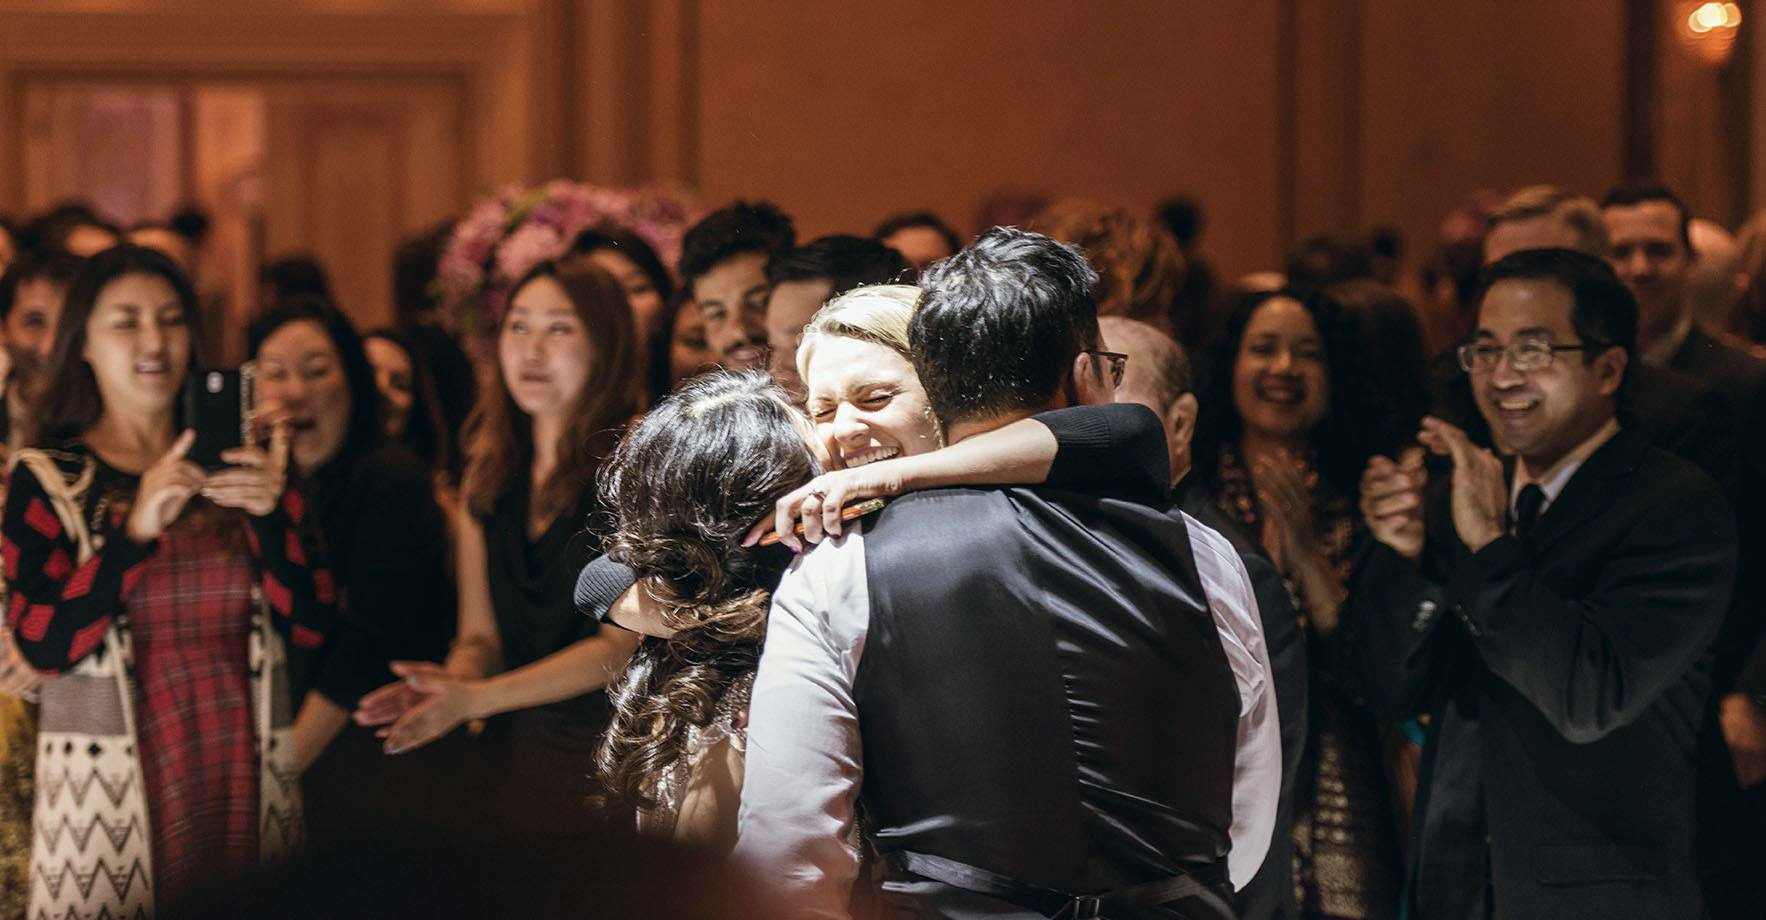 Jane, Harryand Dance Instructor Murisa in a celebratory hug after they wowed all of their guests with a show stopping first dance!! Congratulations you two!